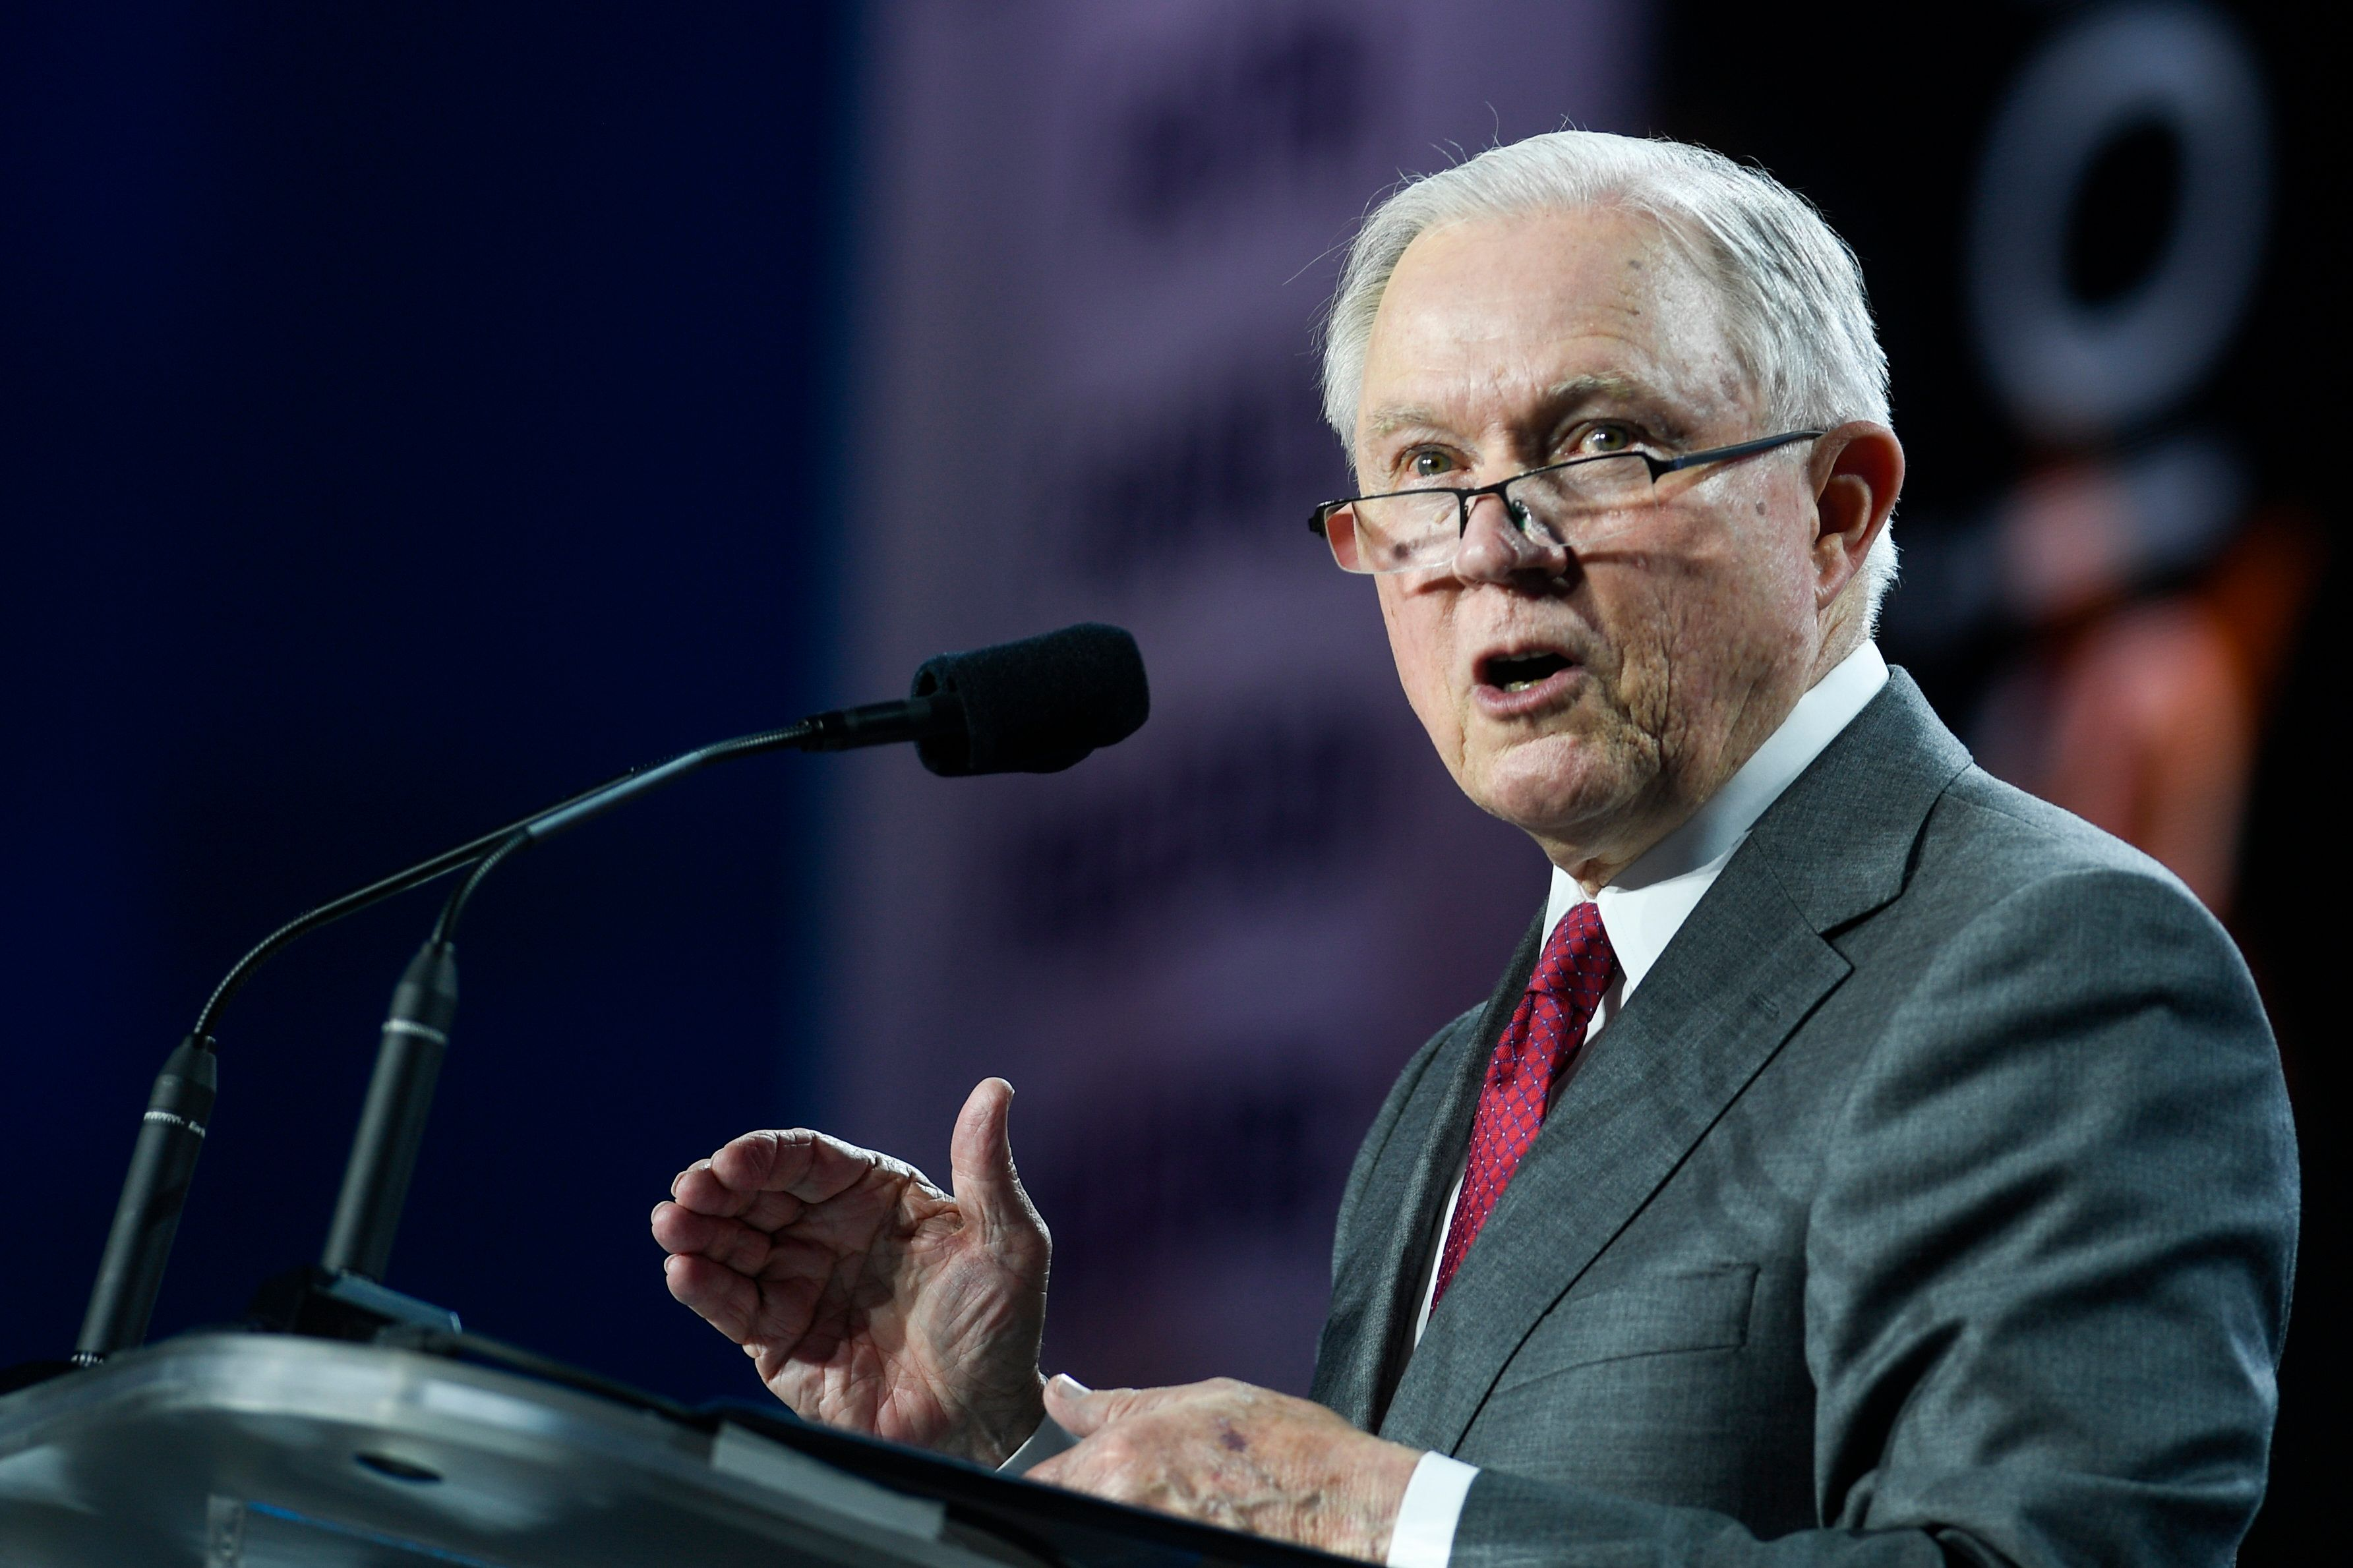 DENVER, CO - JUNE 8: United States Attorney General Jeff Sessions speaks during the Western Conservative Summit in Denver on Friday, June 8, 2018. (Photo by AAron Ontiveroz/The Denver Post via Getty Images)